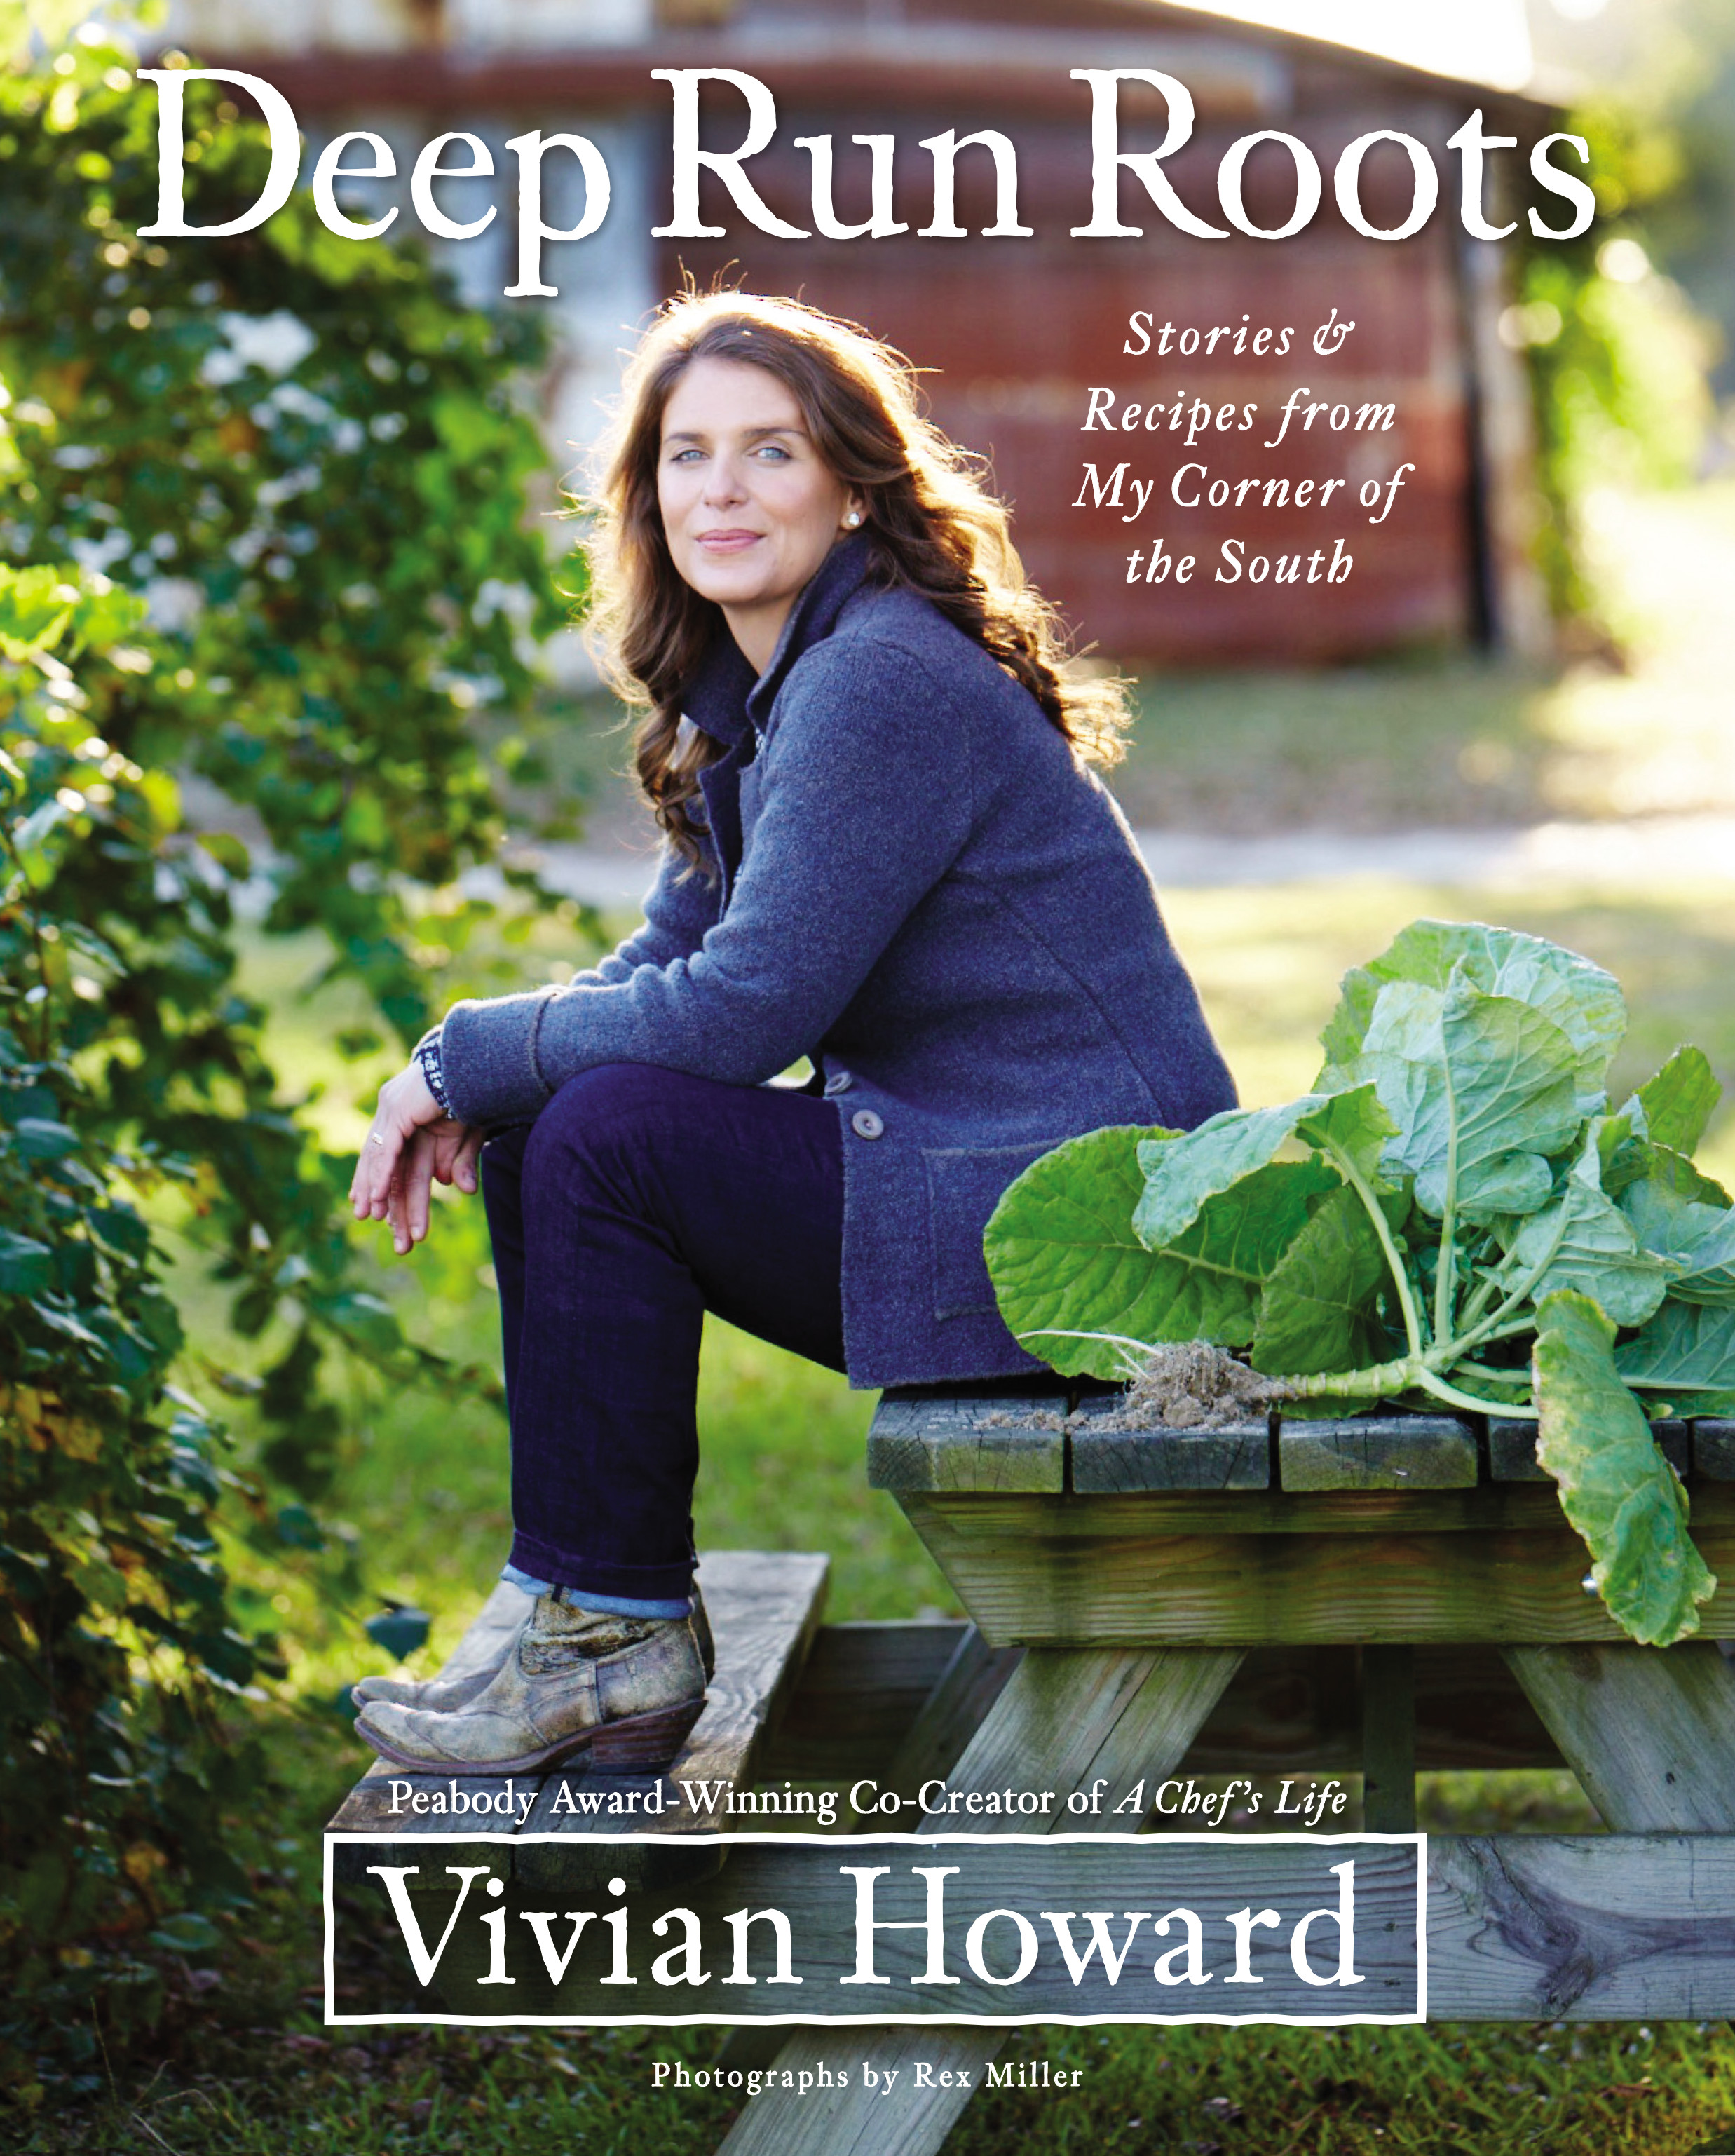 Vivian howard visits with her food truck and new cookbook vivian howard visits with her food truck and new cookbook forumfinder Image collections